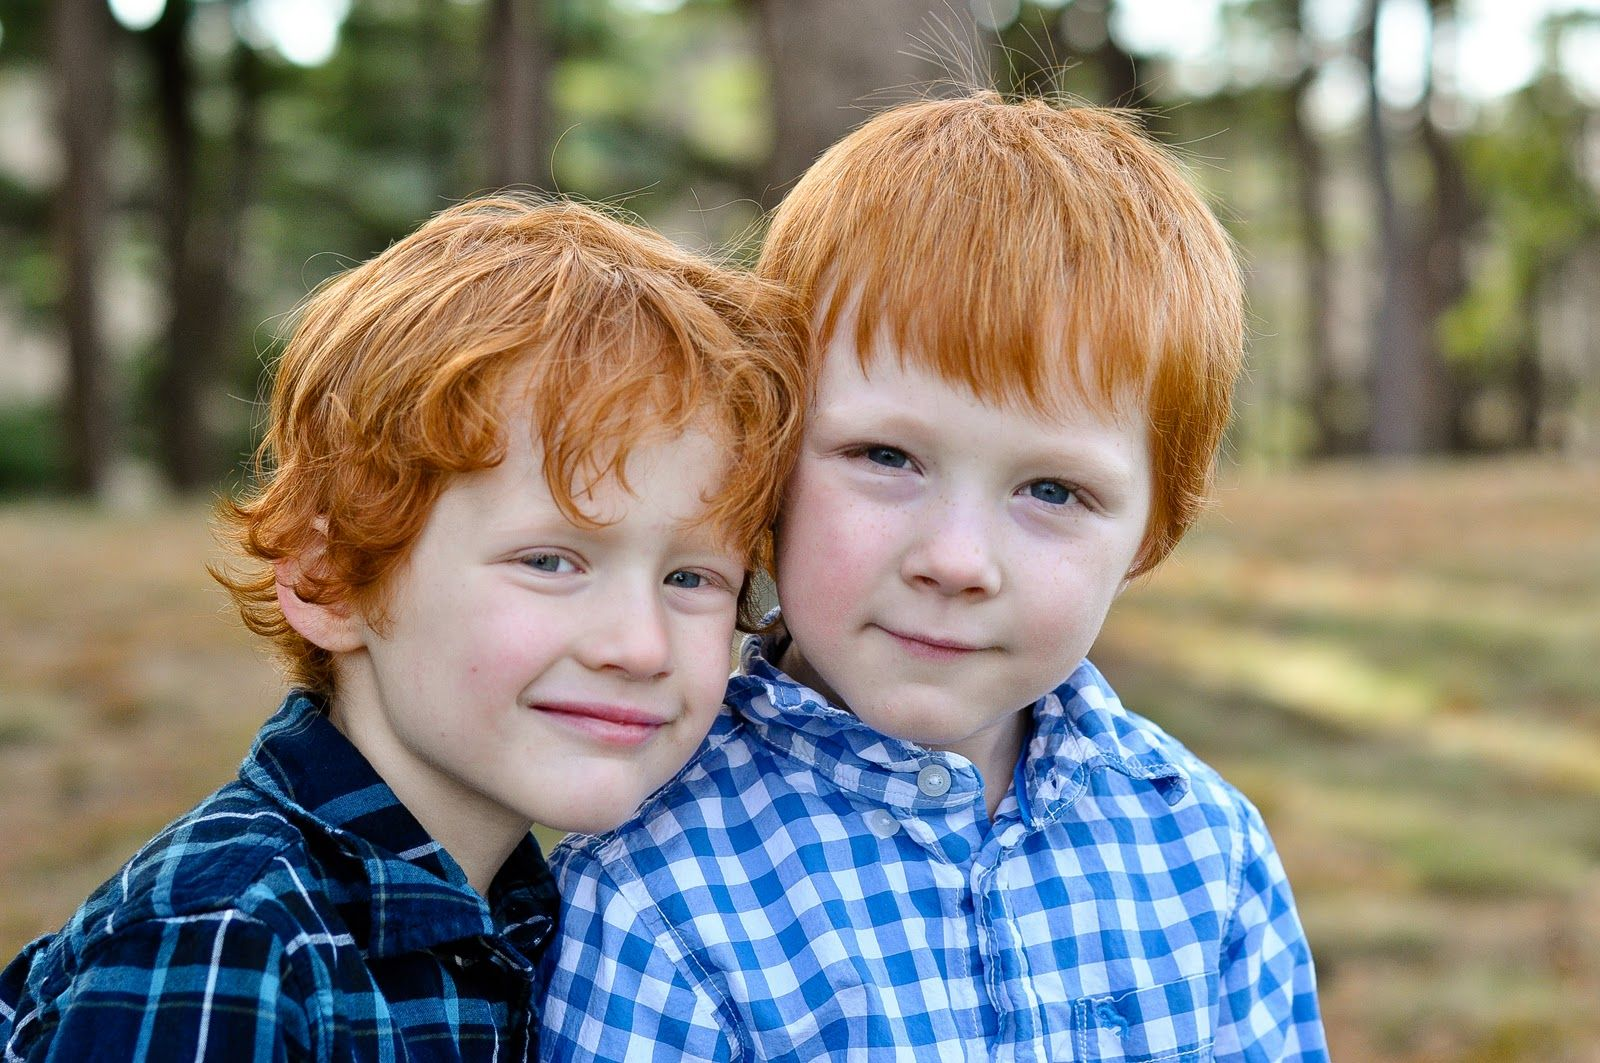 twin children and families | Twins and a baby sister on the way — Andover, MA Children, Family ...